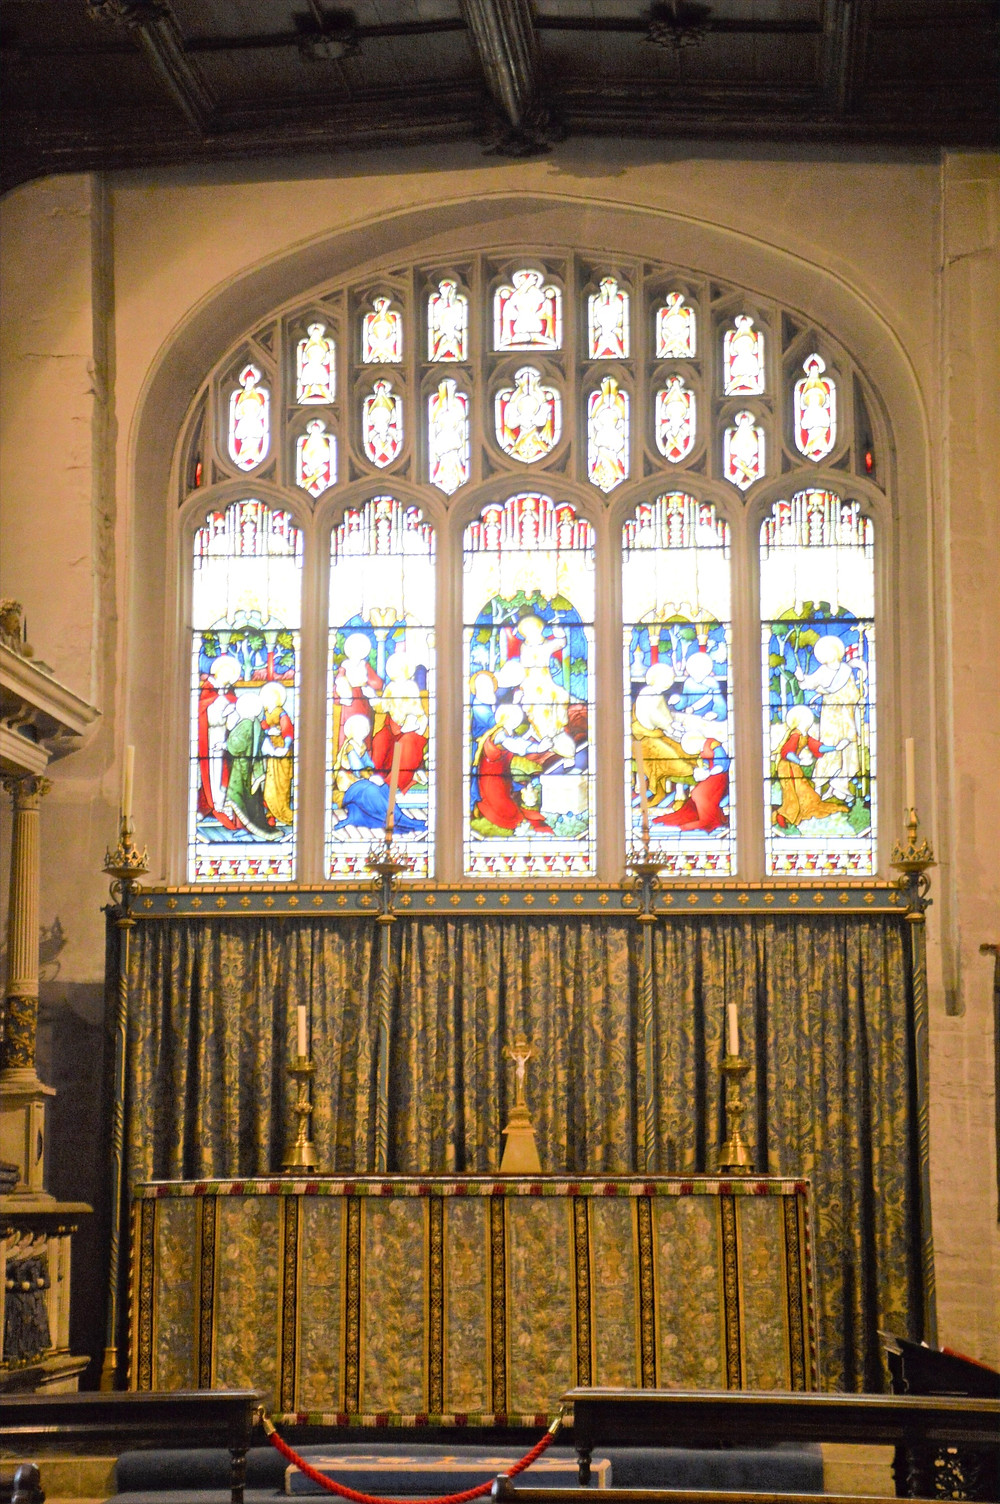 Lady Chapel which dates to around 1240 in Cathedral of the Cotswolds, St. John the Baptist in Cirencester of the Cotswolds